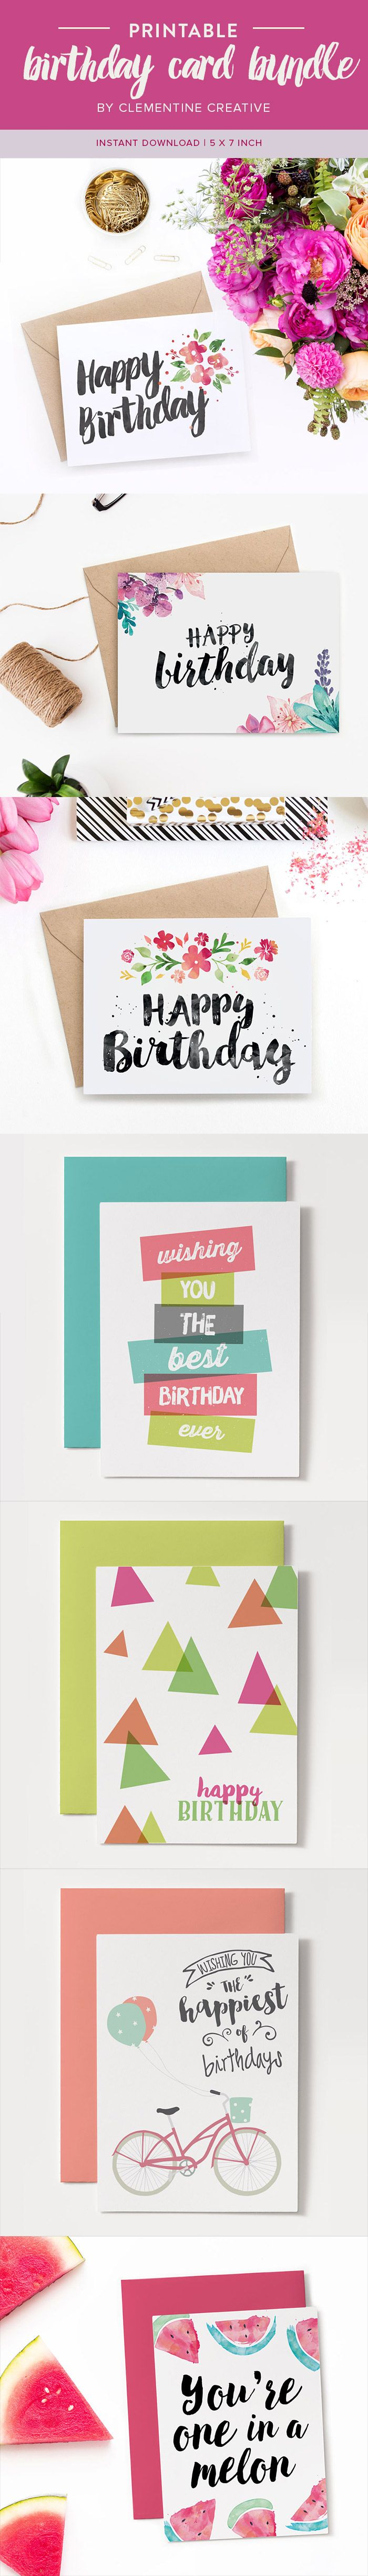 You won't run out of birthday cards with this bundle! Download all of these printable birthday cards instantly whenever you need them.